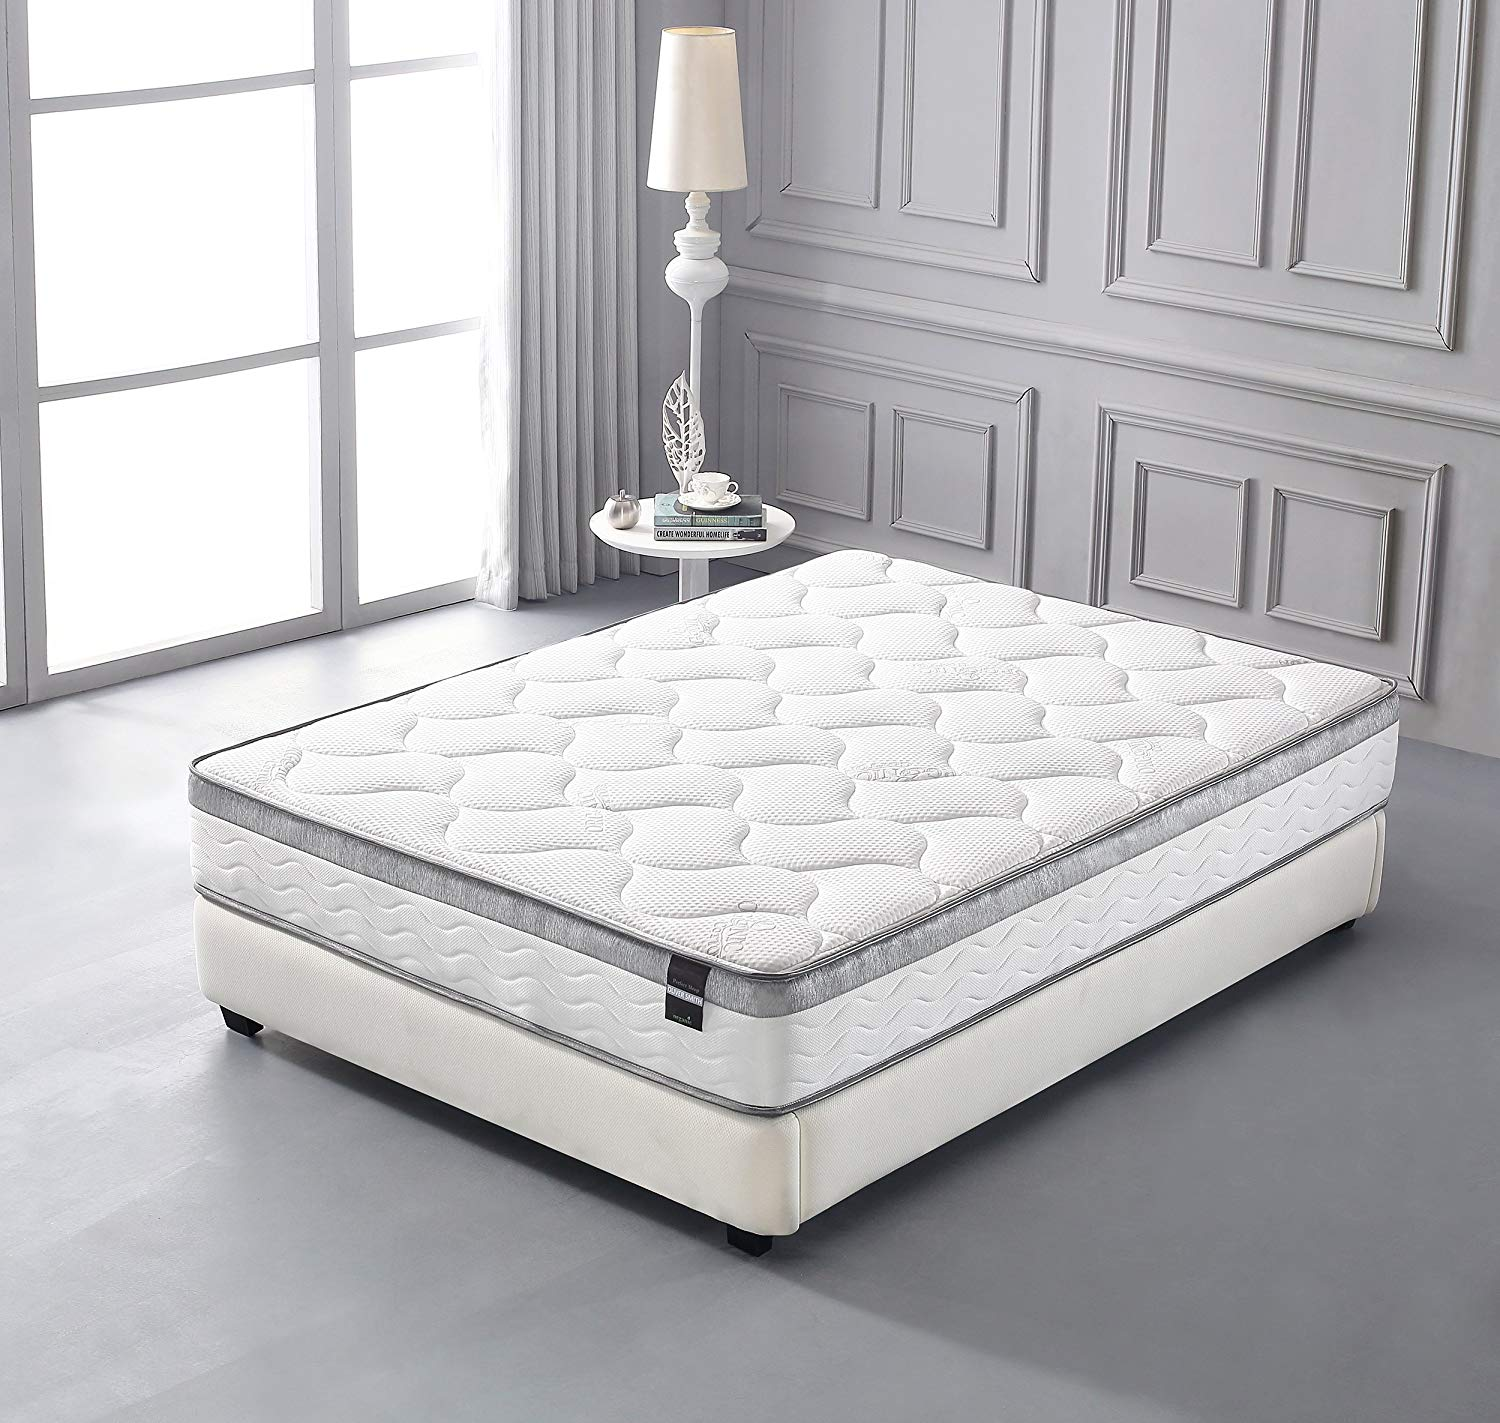 10 inch Memory Foam and Spring Hybrid Full Size Mattress - Walmart